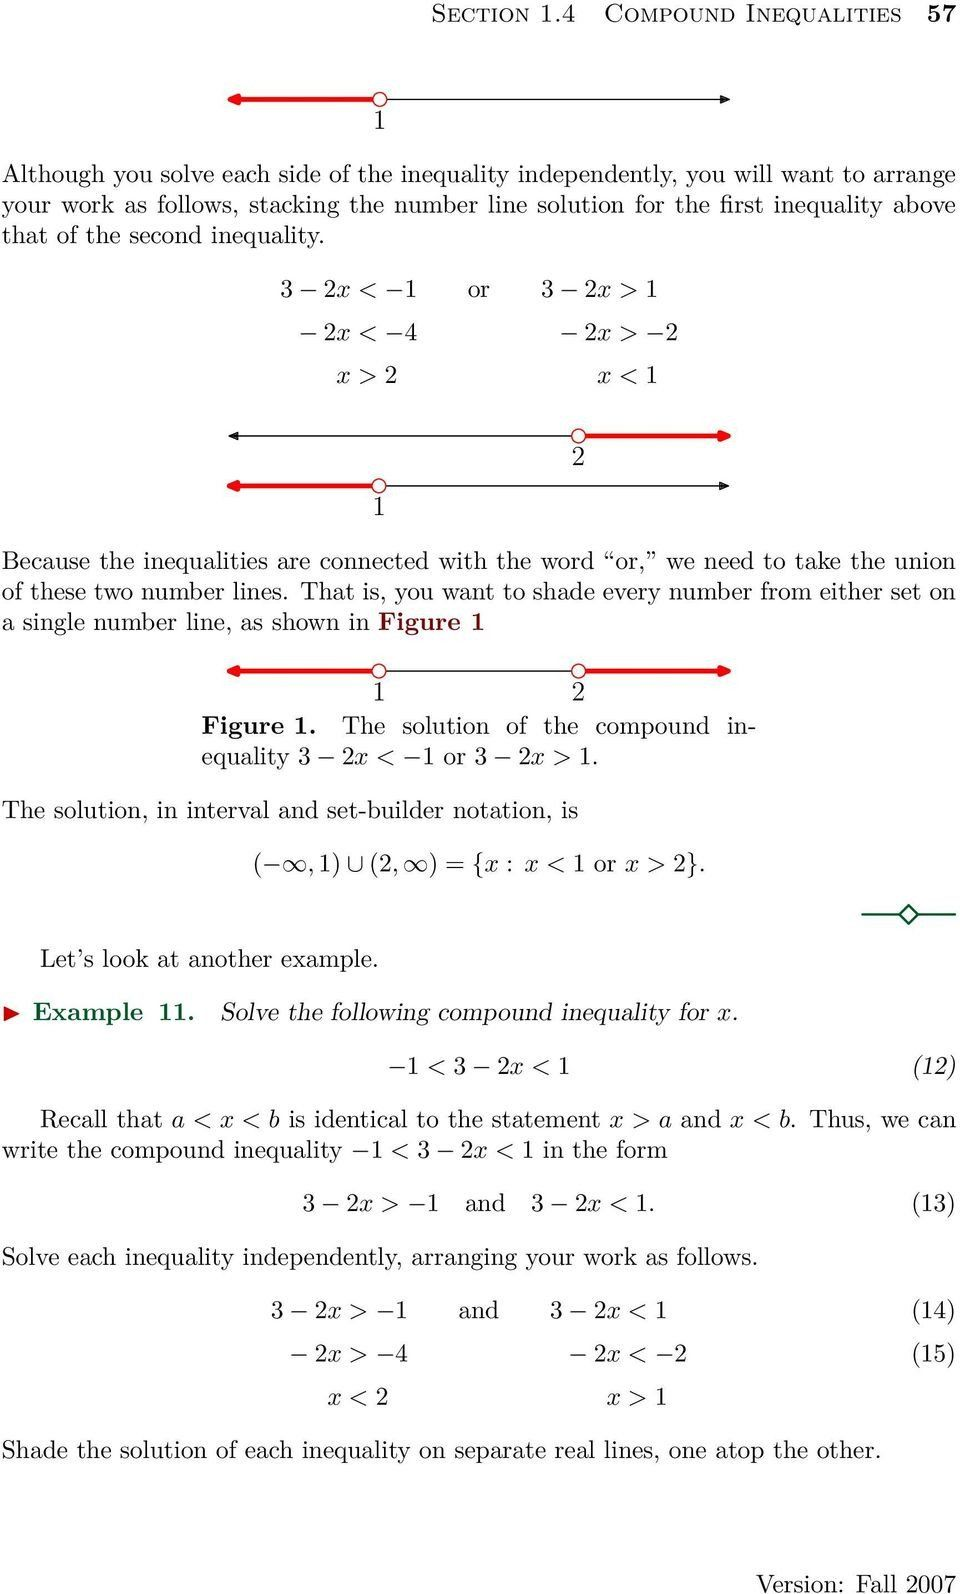 Compound Inequalities Worksheet Answers 1 4 Pound Inequalities Pdf Free Download In 2020 Graphing Inequalities Graphing Quadratics Word Problem Worksheets